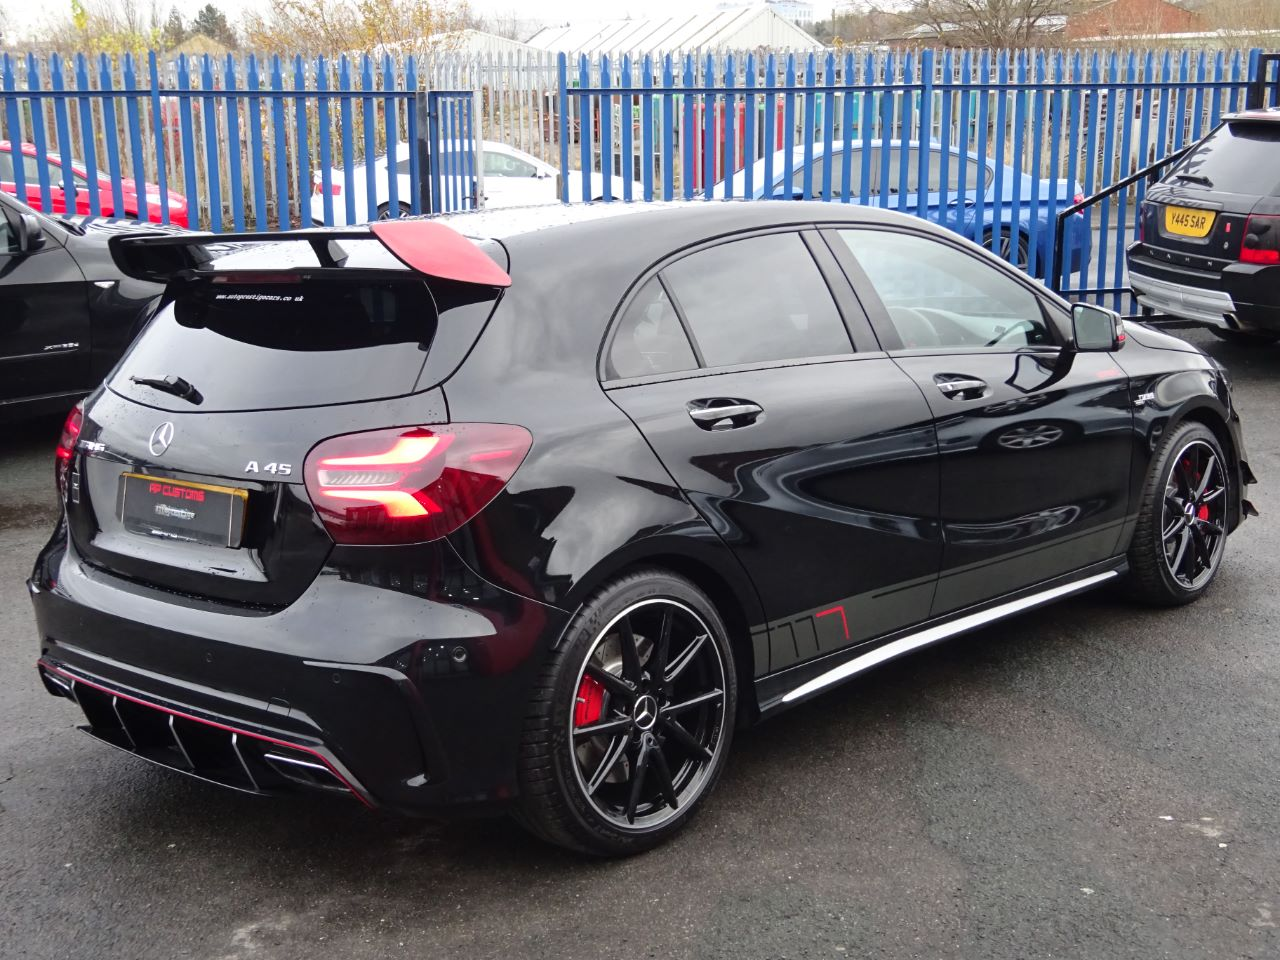 Mercedes-Benz A Class 2.0 A45 4Matic Premium 5dr Auto RARE OBSIDIAN BLACK WITH EXTRAS AS NEW 2016 STEALTH PACK Hatchback Petrol Black